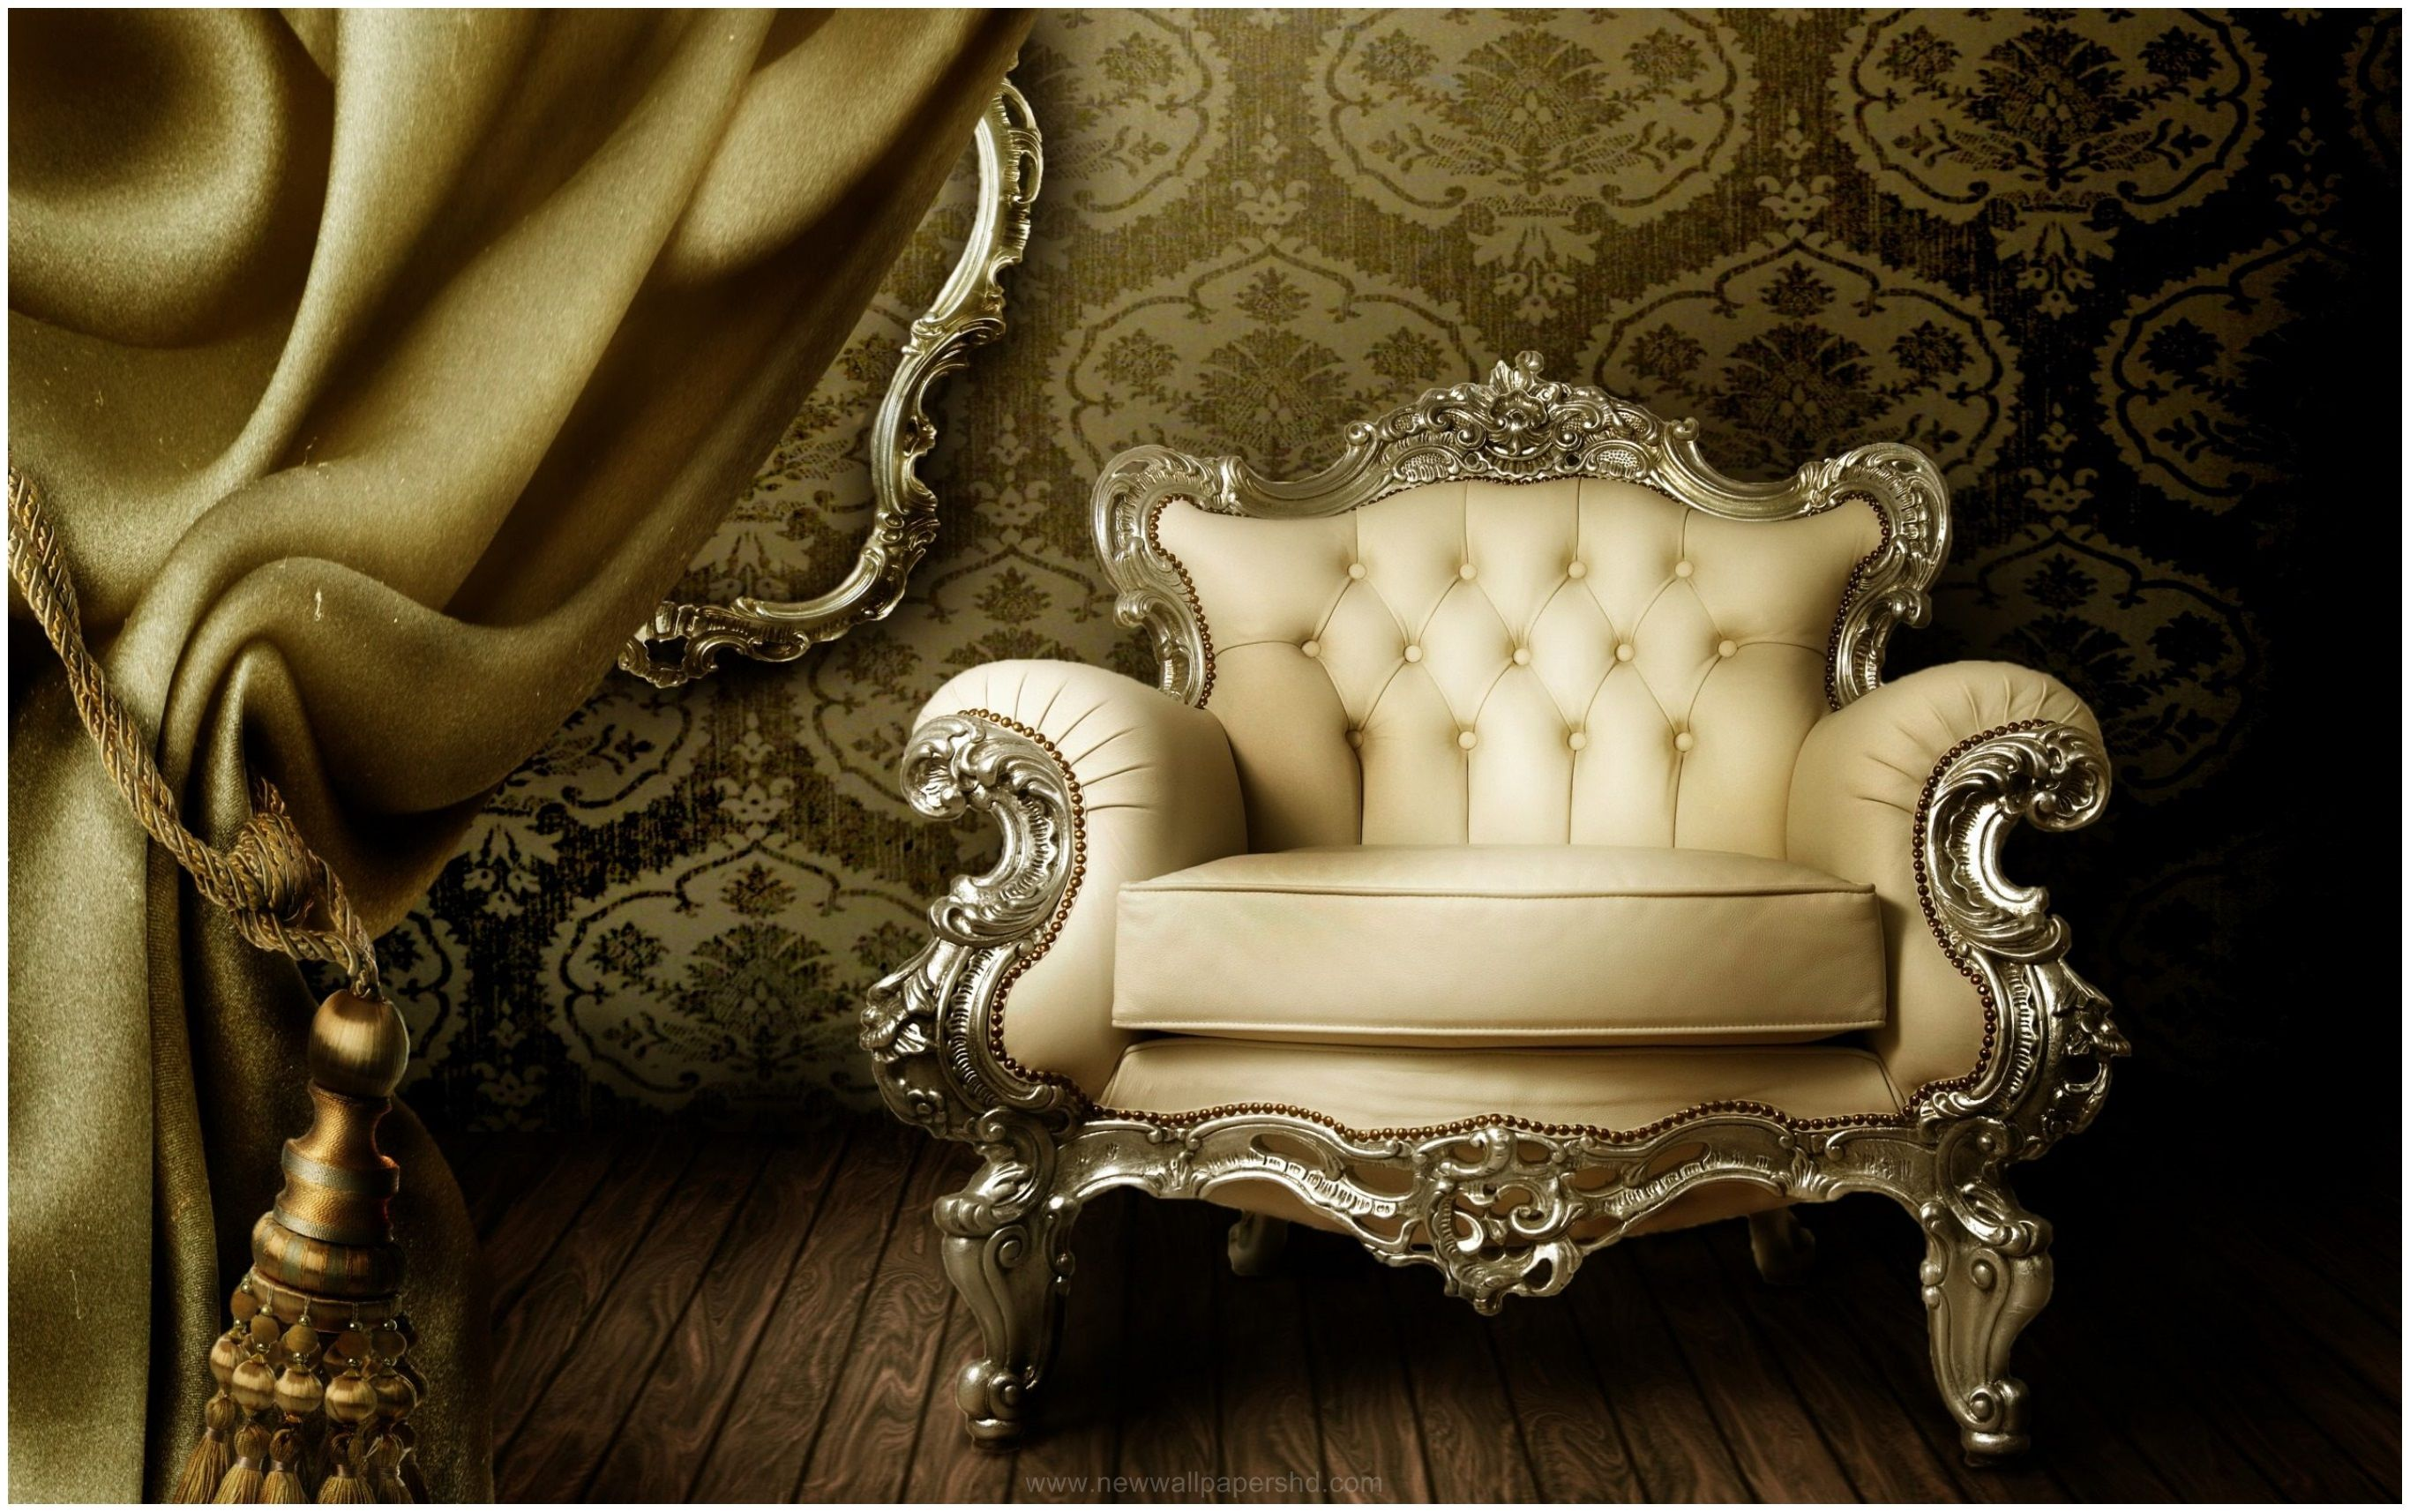 image for vintage sofa interior design hd wallpaper desain rh pinterest com